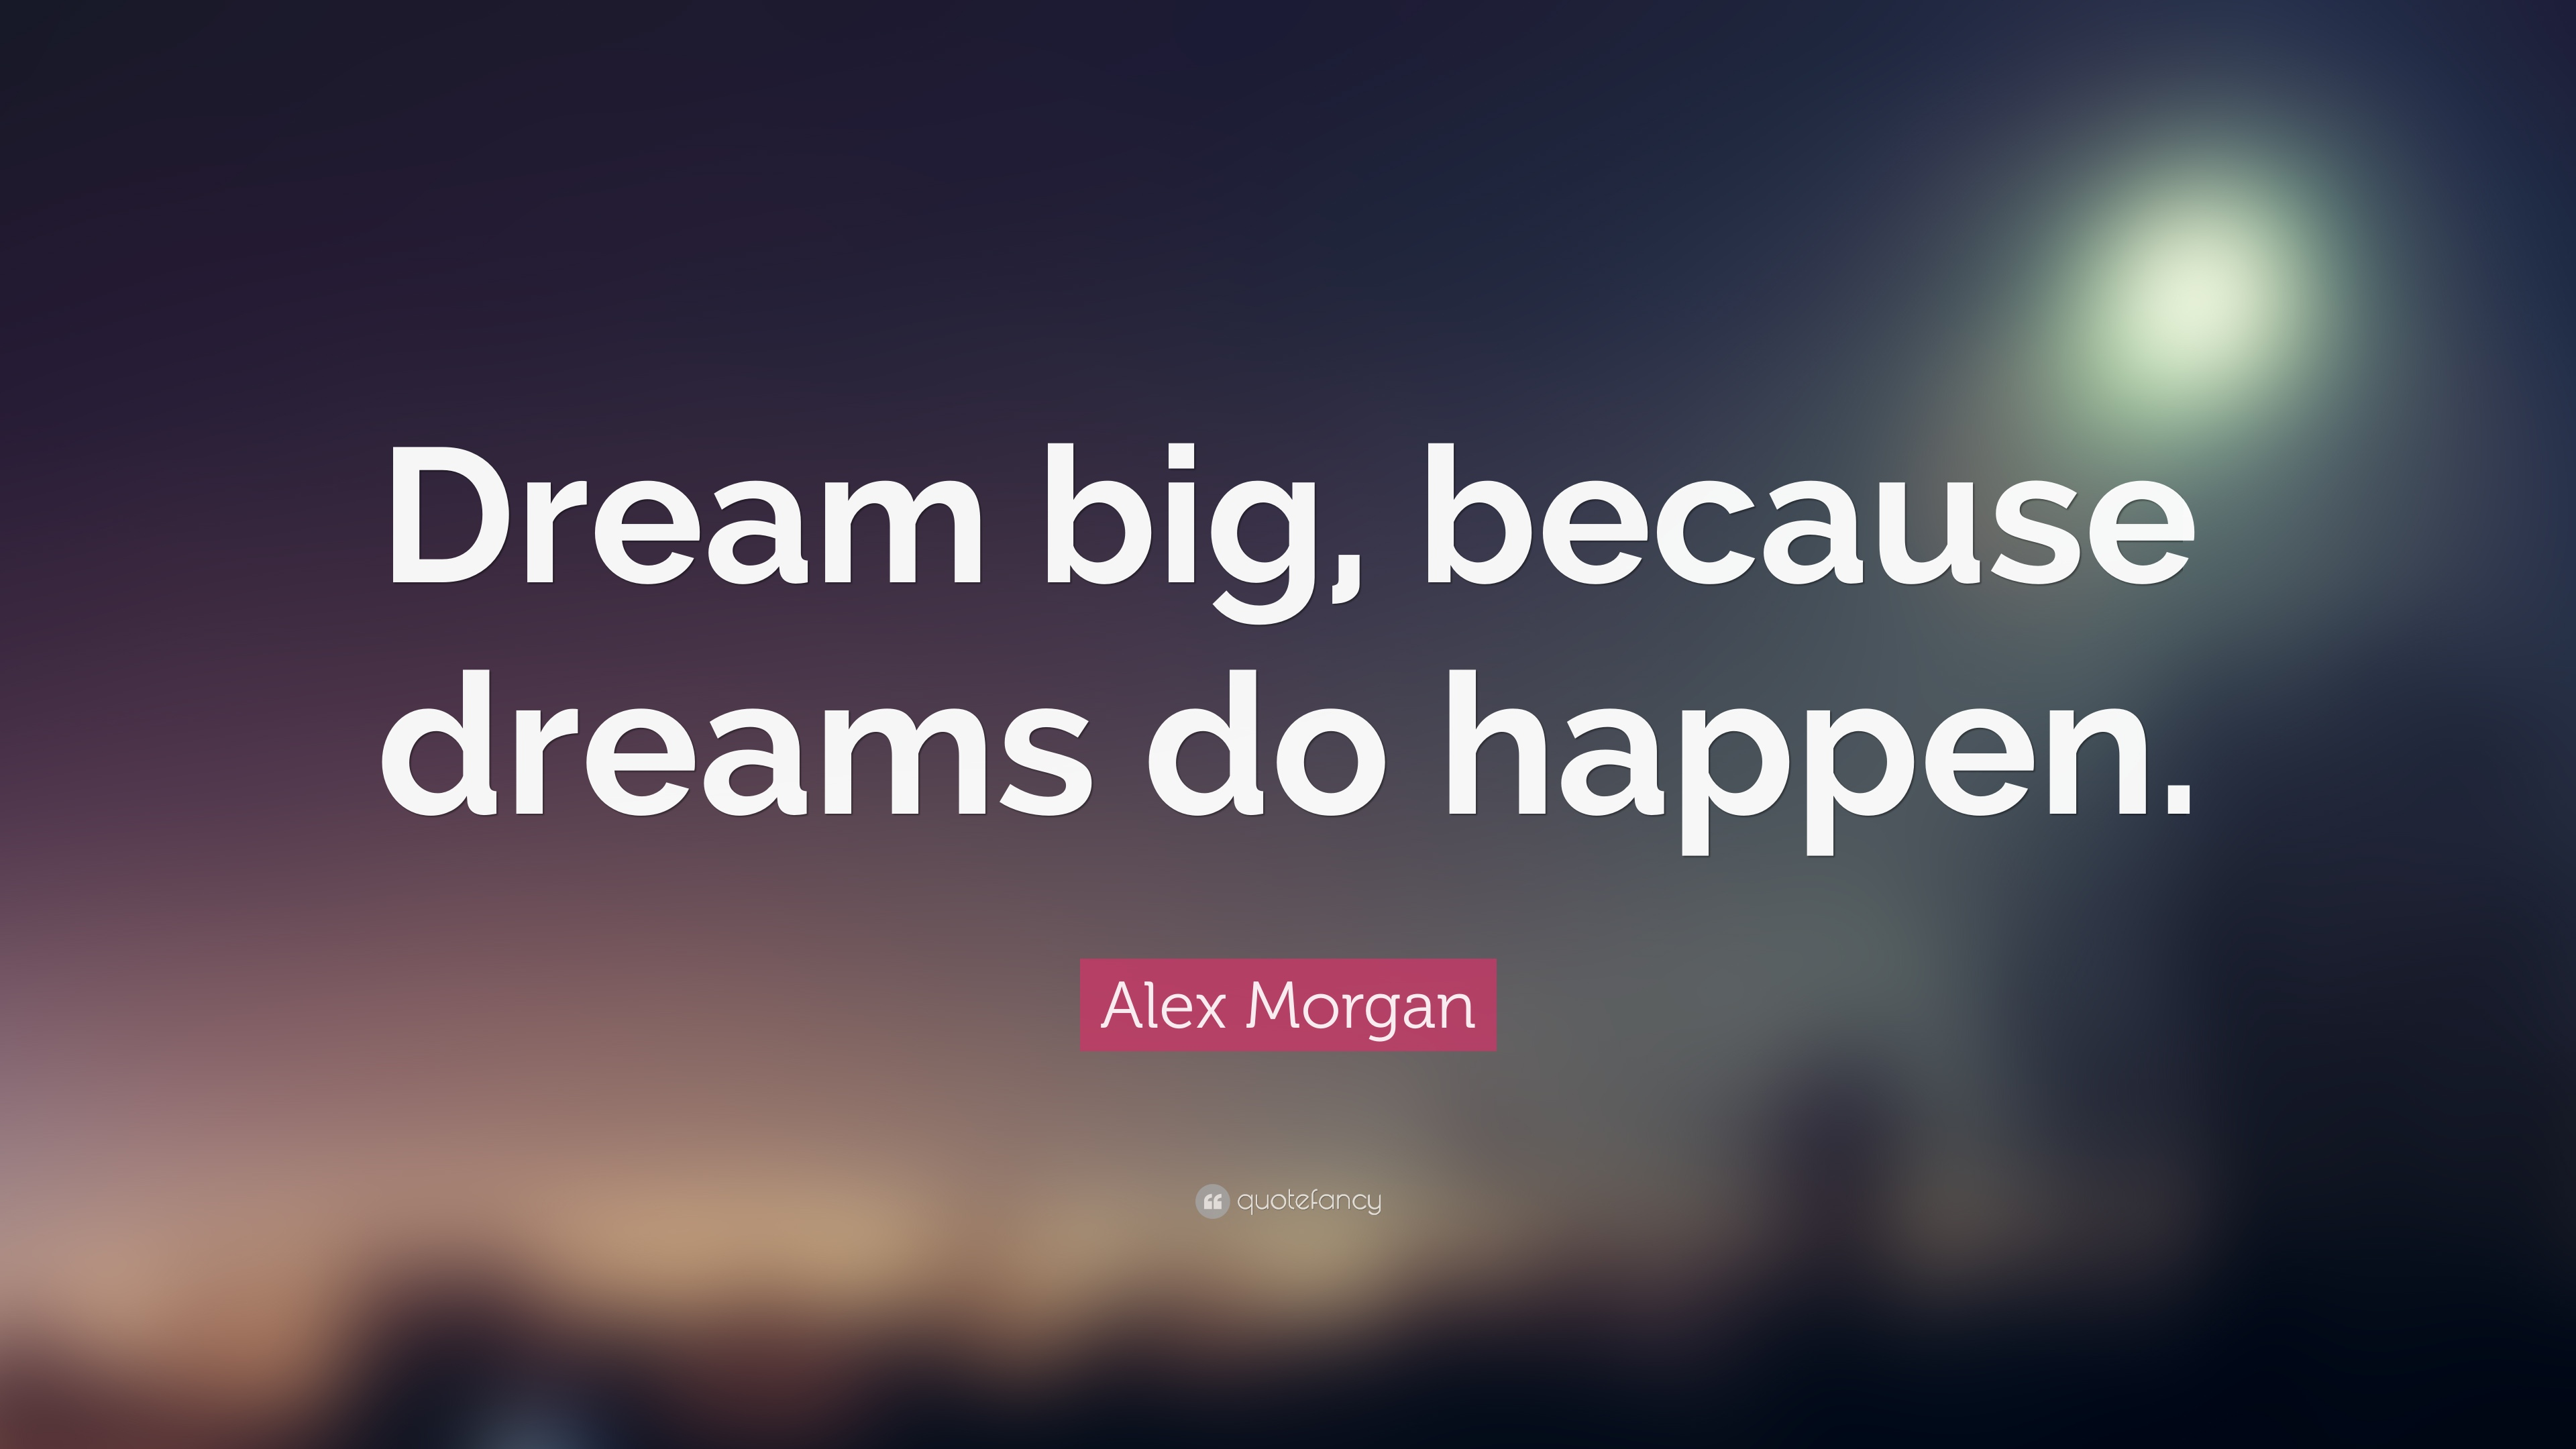 Quotes About Dreams: U201cDream Big, Because Dreams Do Happen.u201d U2014 Alex